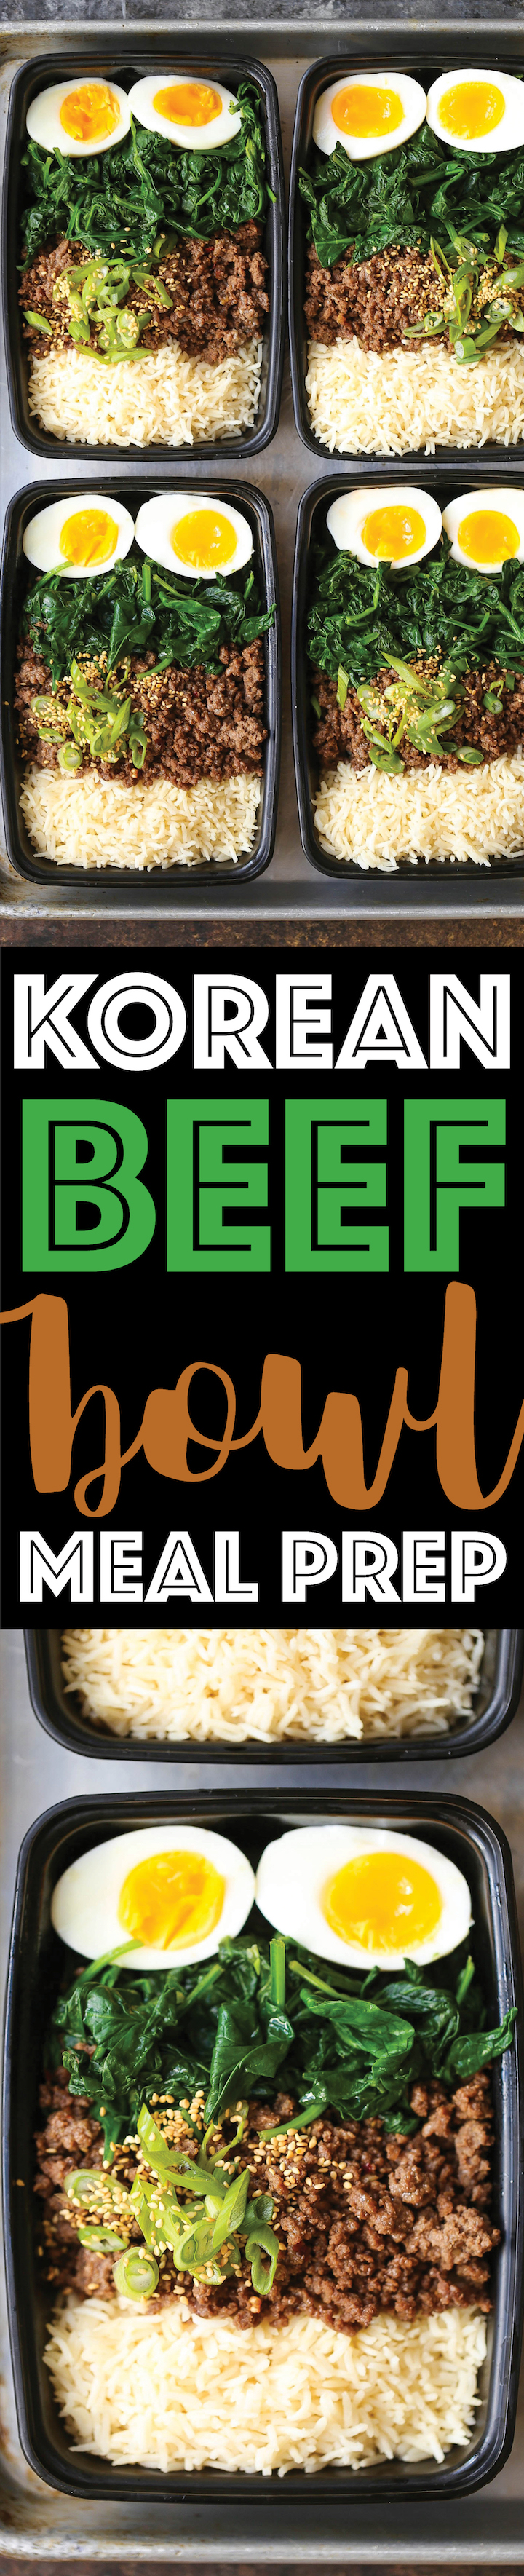 Korean Beef Bowl Meal Prep - Tastes like Korean BBQ in meal prep form and you can have it ALL WEEK LONG! Simply prep for the week and you'll be set. EASY!